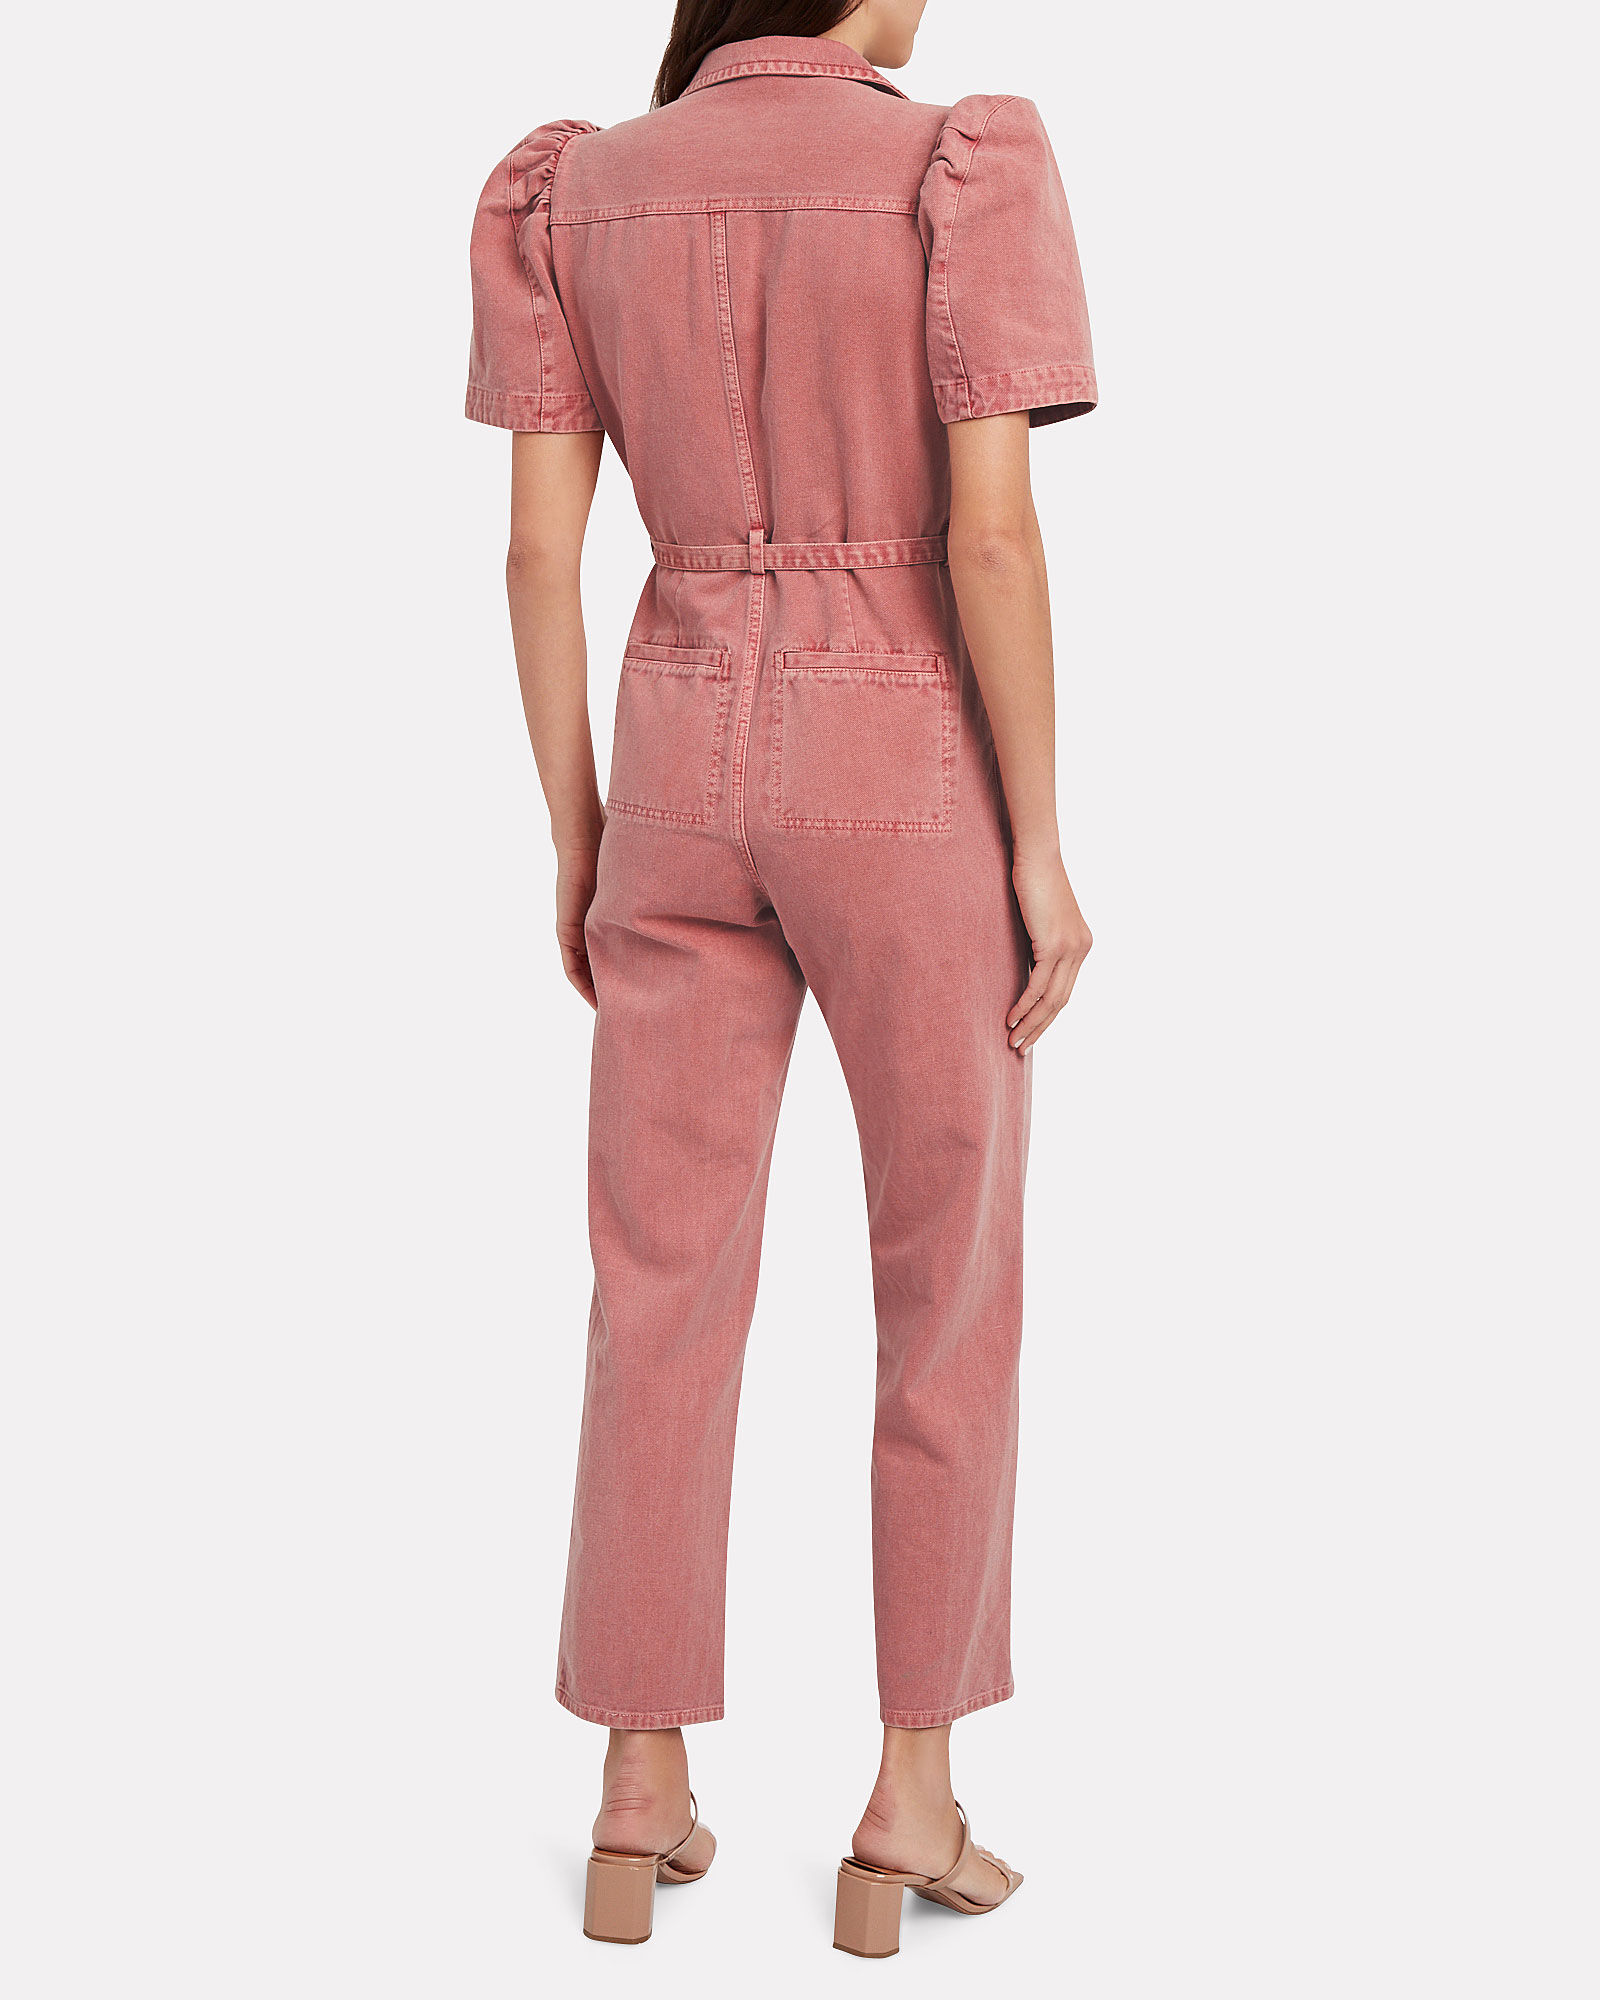 Corbin Puffed Sleeve Denim Jumpsuit, DUSTY ROSE, hi-res